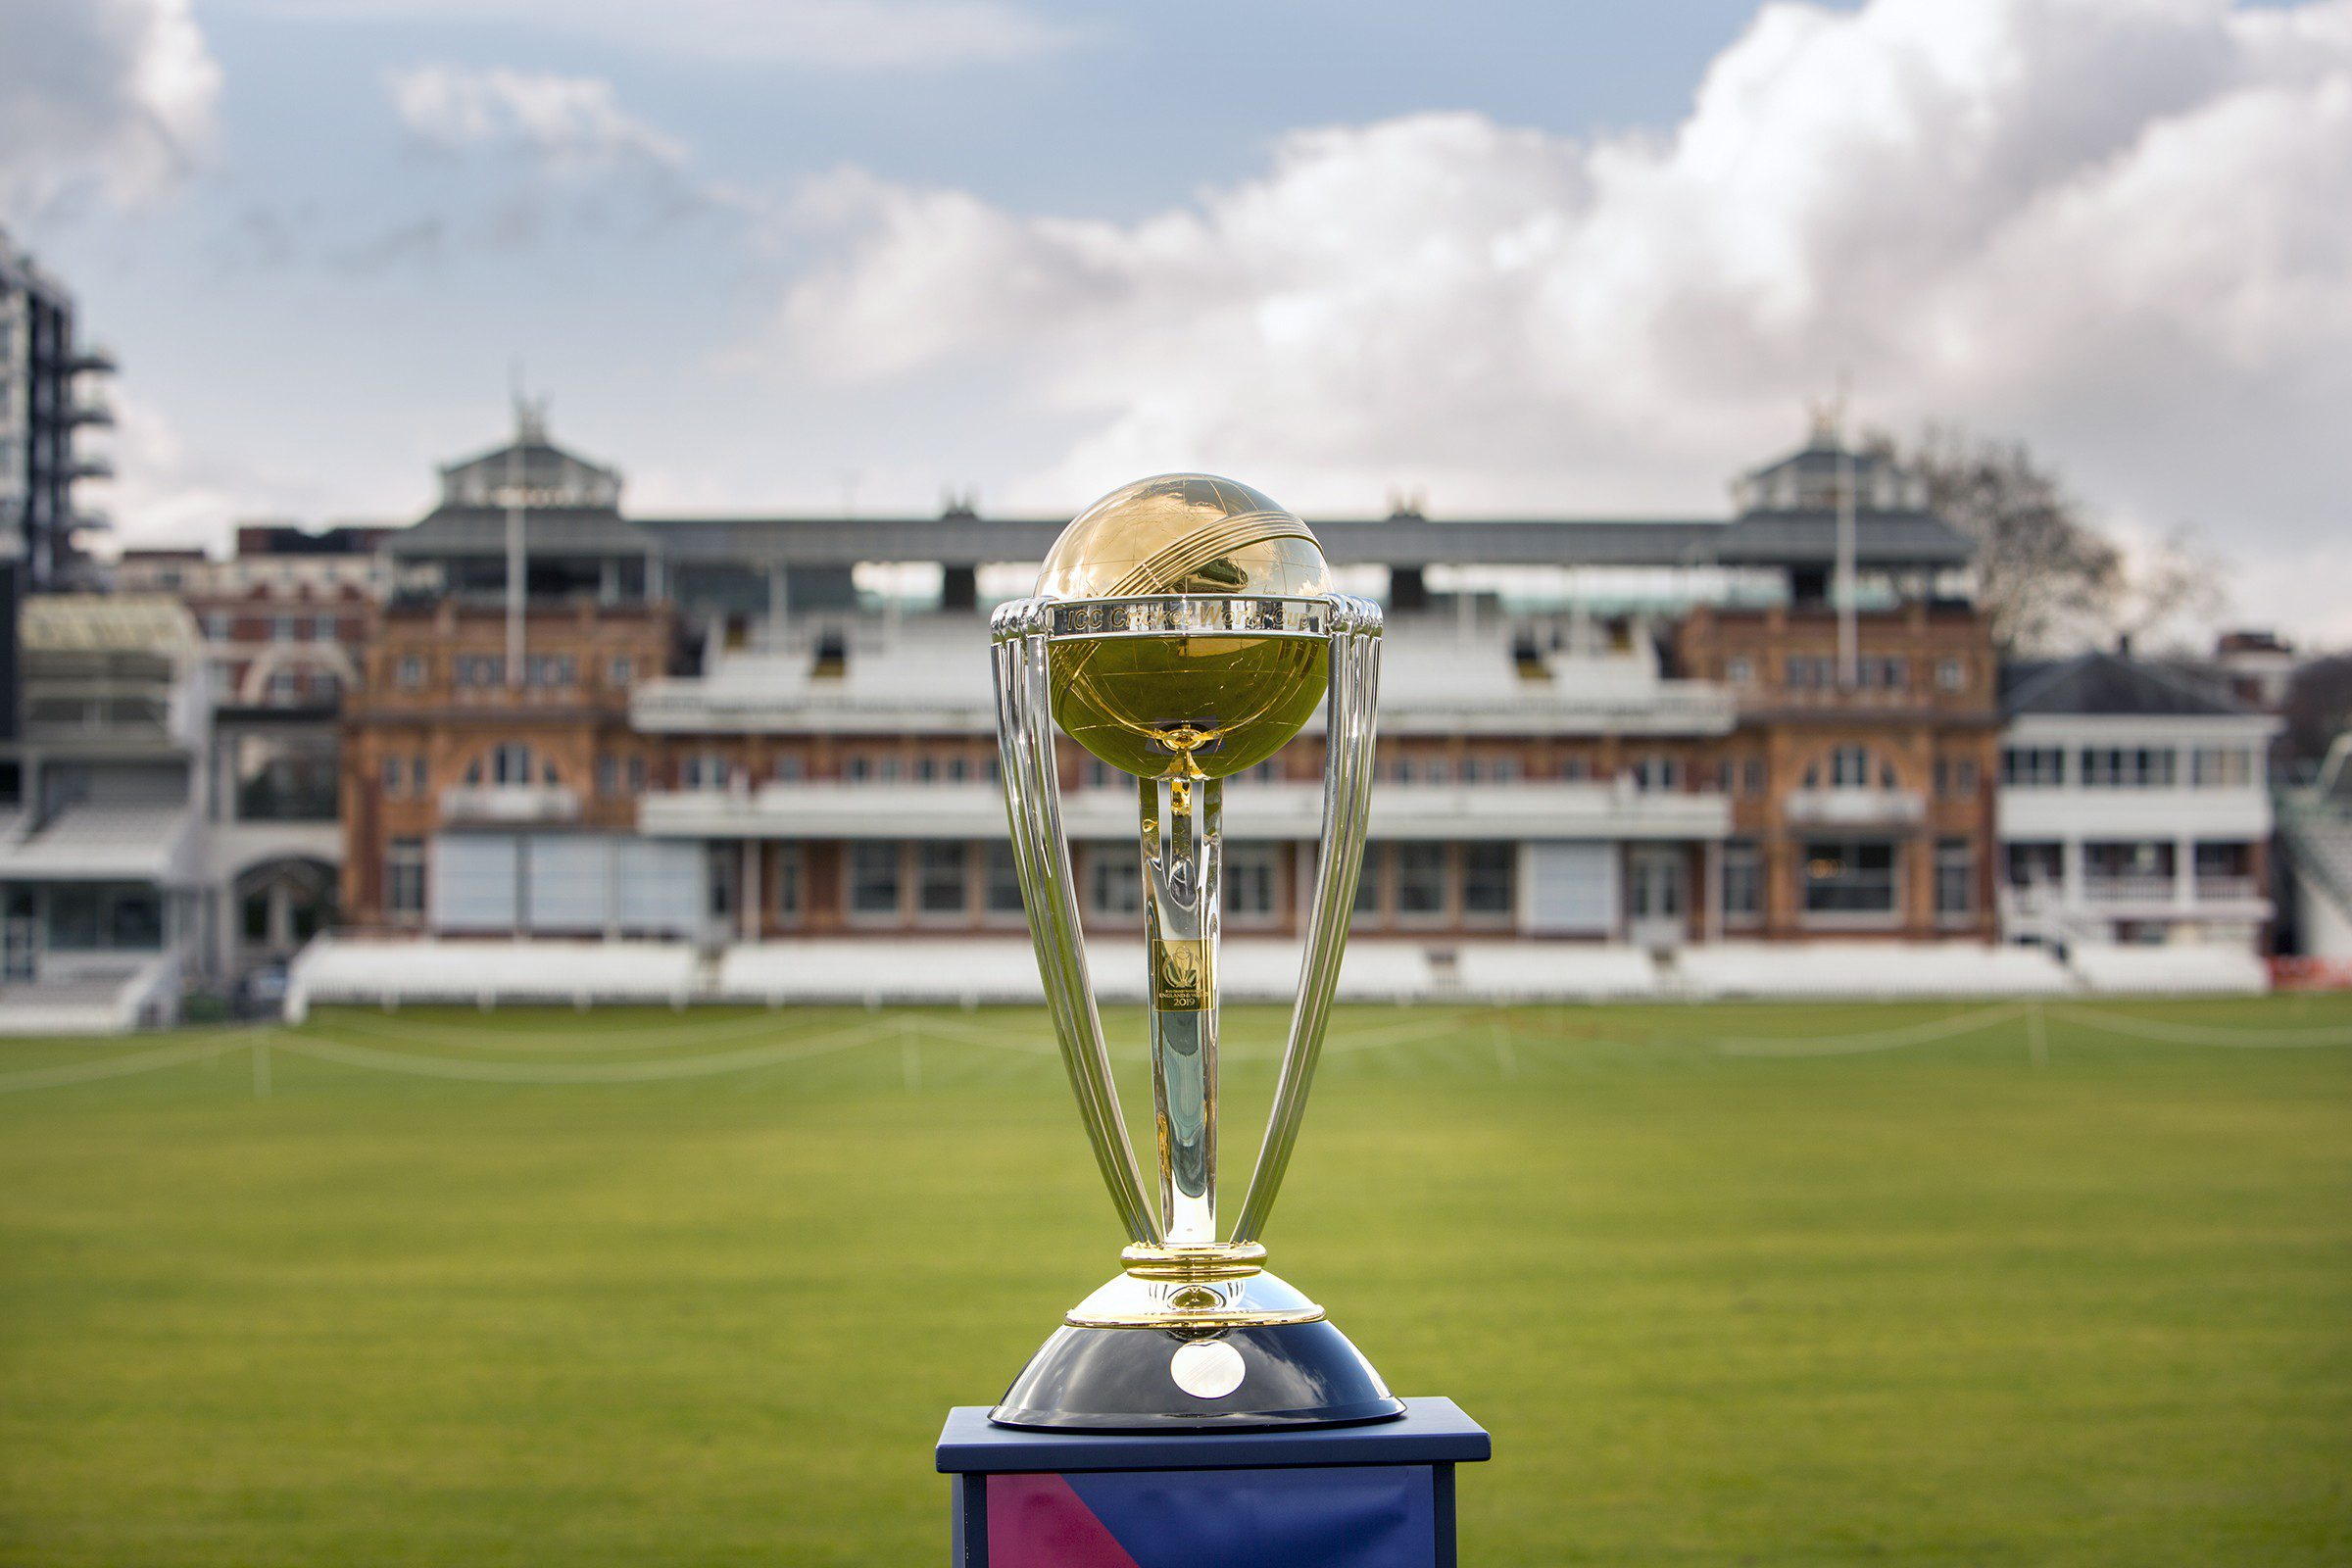 Who Will Win The Cricket World Cup 2019 ? – Prediction